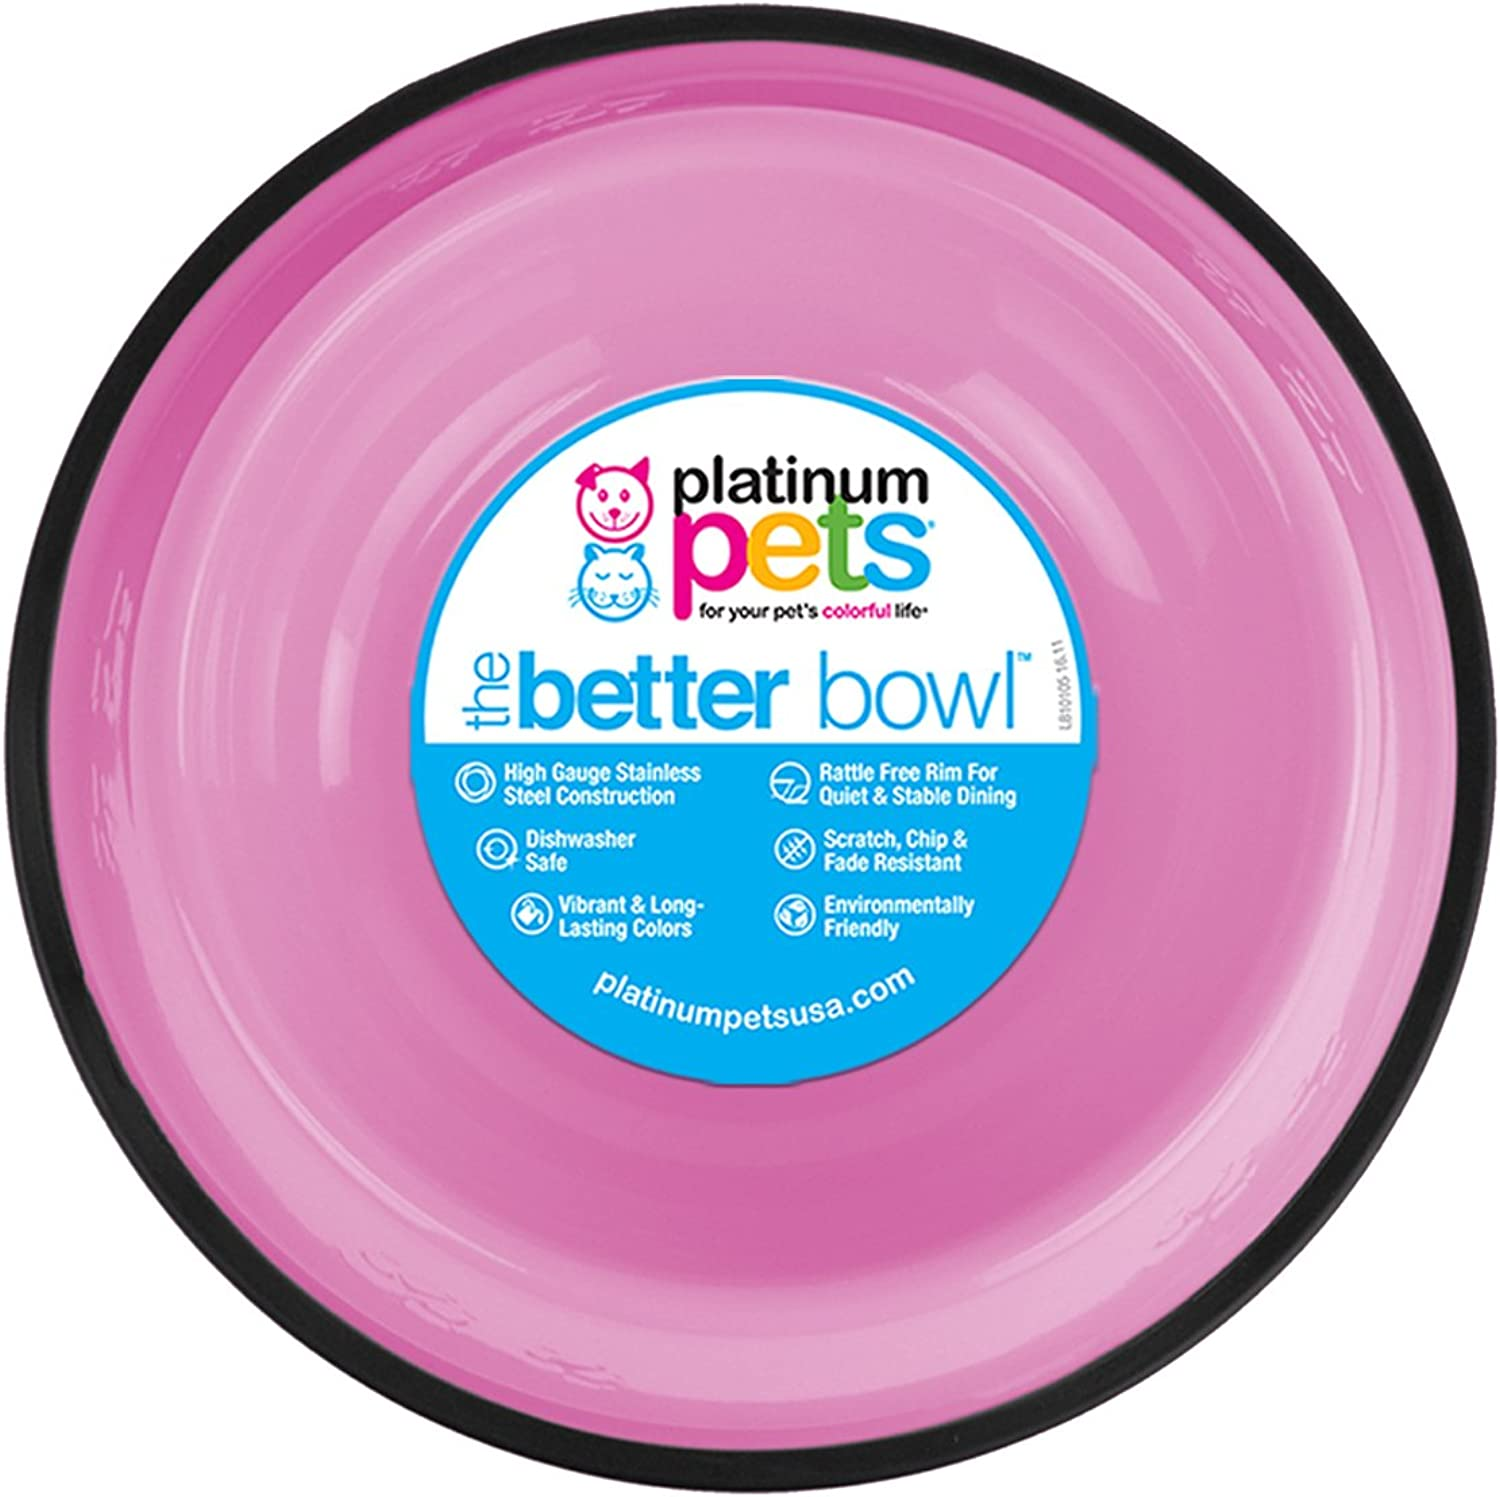 Platinum Pets 4 Cup Embossed NonTip Dog Bowl, Cotton Candy Pink